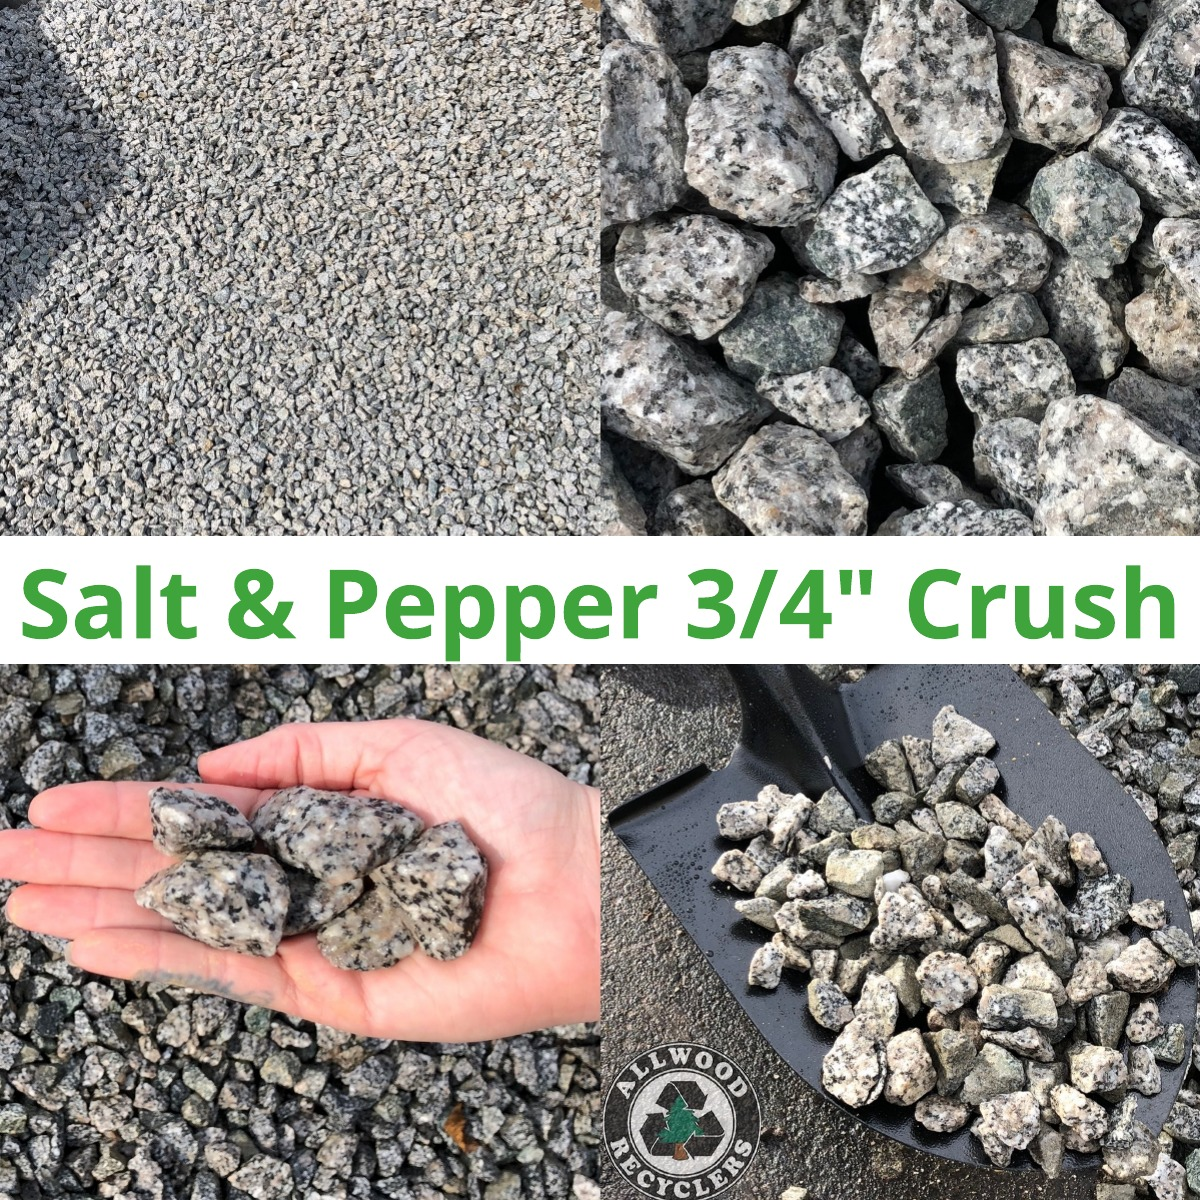 Salt & Pepper ¾ Crush